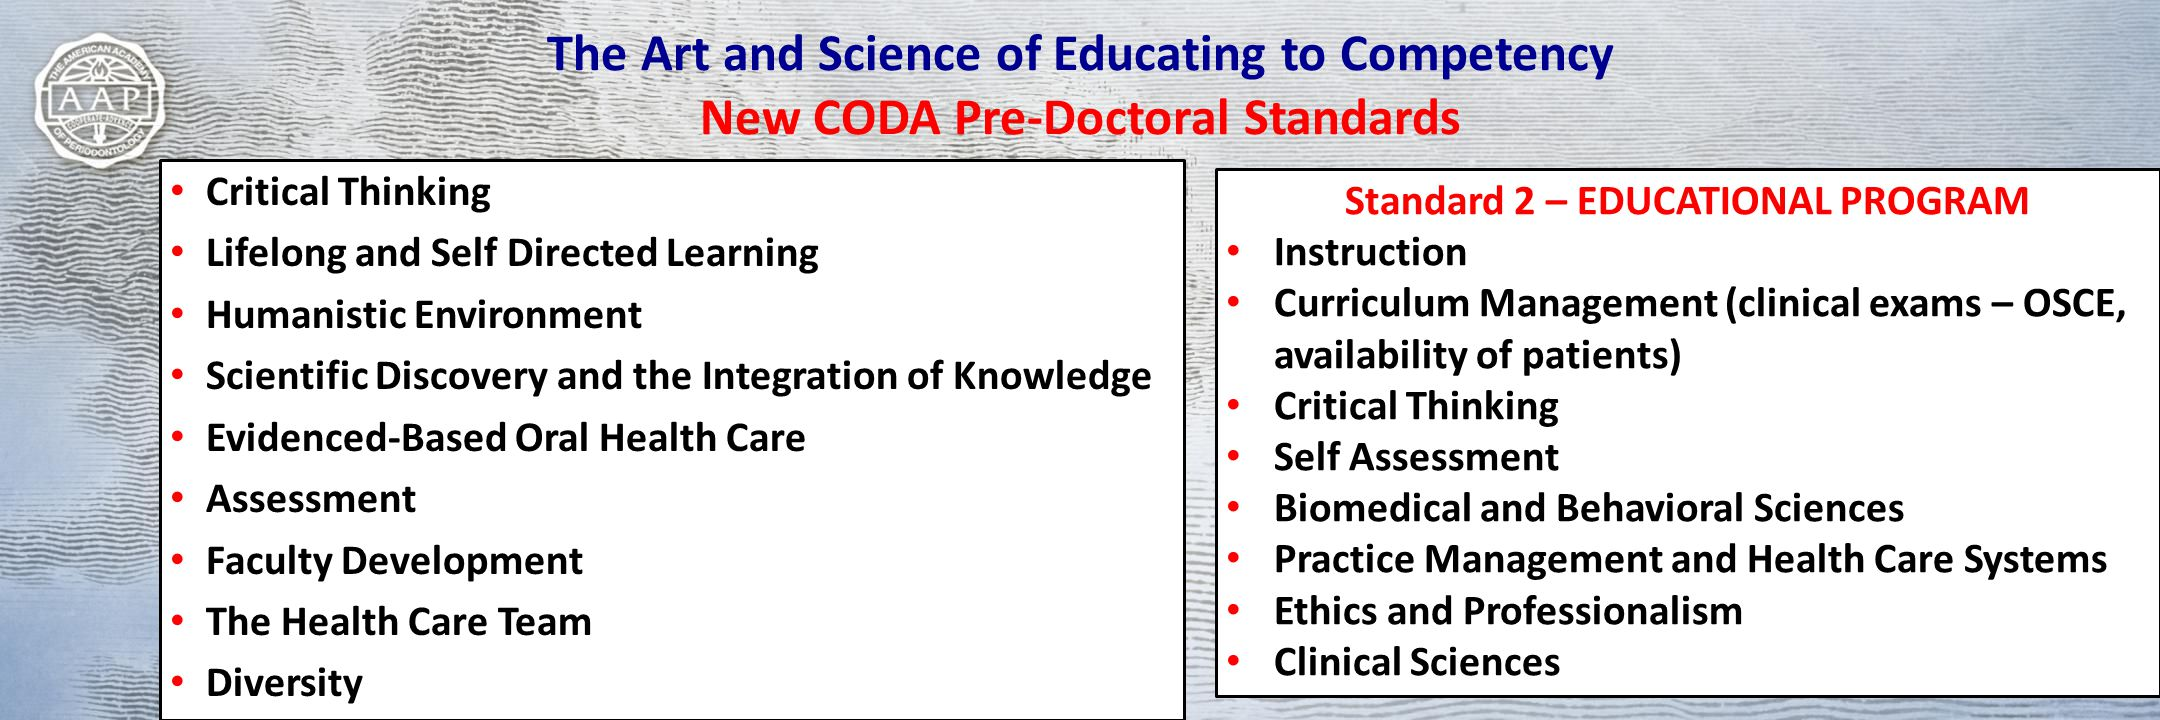 The Art and Science of Educating to Competency New CODA Pre-Doctoral Standards Critical Thinking Lifelong and Self Directed Learning Humanistic Environment Scientific Discovery and the Integration of Knowledge Evidenced-Based Oral Health Care Assessment Faculty Development The Health Care Team Diversity Standard 2 – EDUCATIONAL PROGRAM Instruction Curriculum Management (clinical exams – OSCE, availability of patients) Critical Thinking Self Assessment Biomedical and Behavioral Sciences Practice Management and Health Care Systems Ethics and Professionalism Clinical Sciences